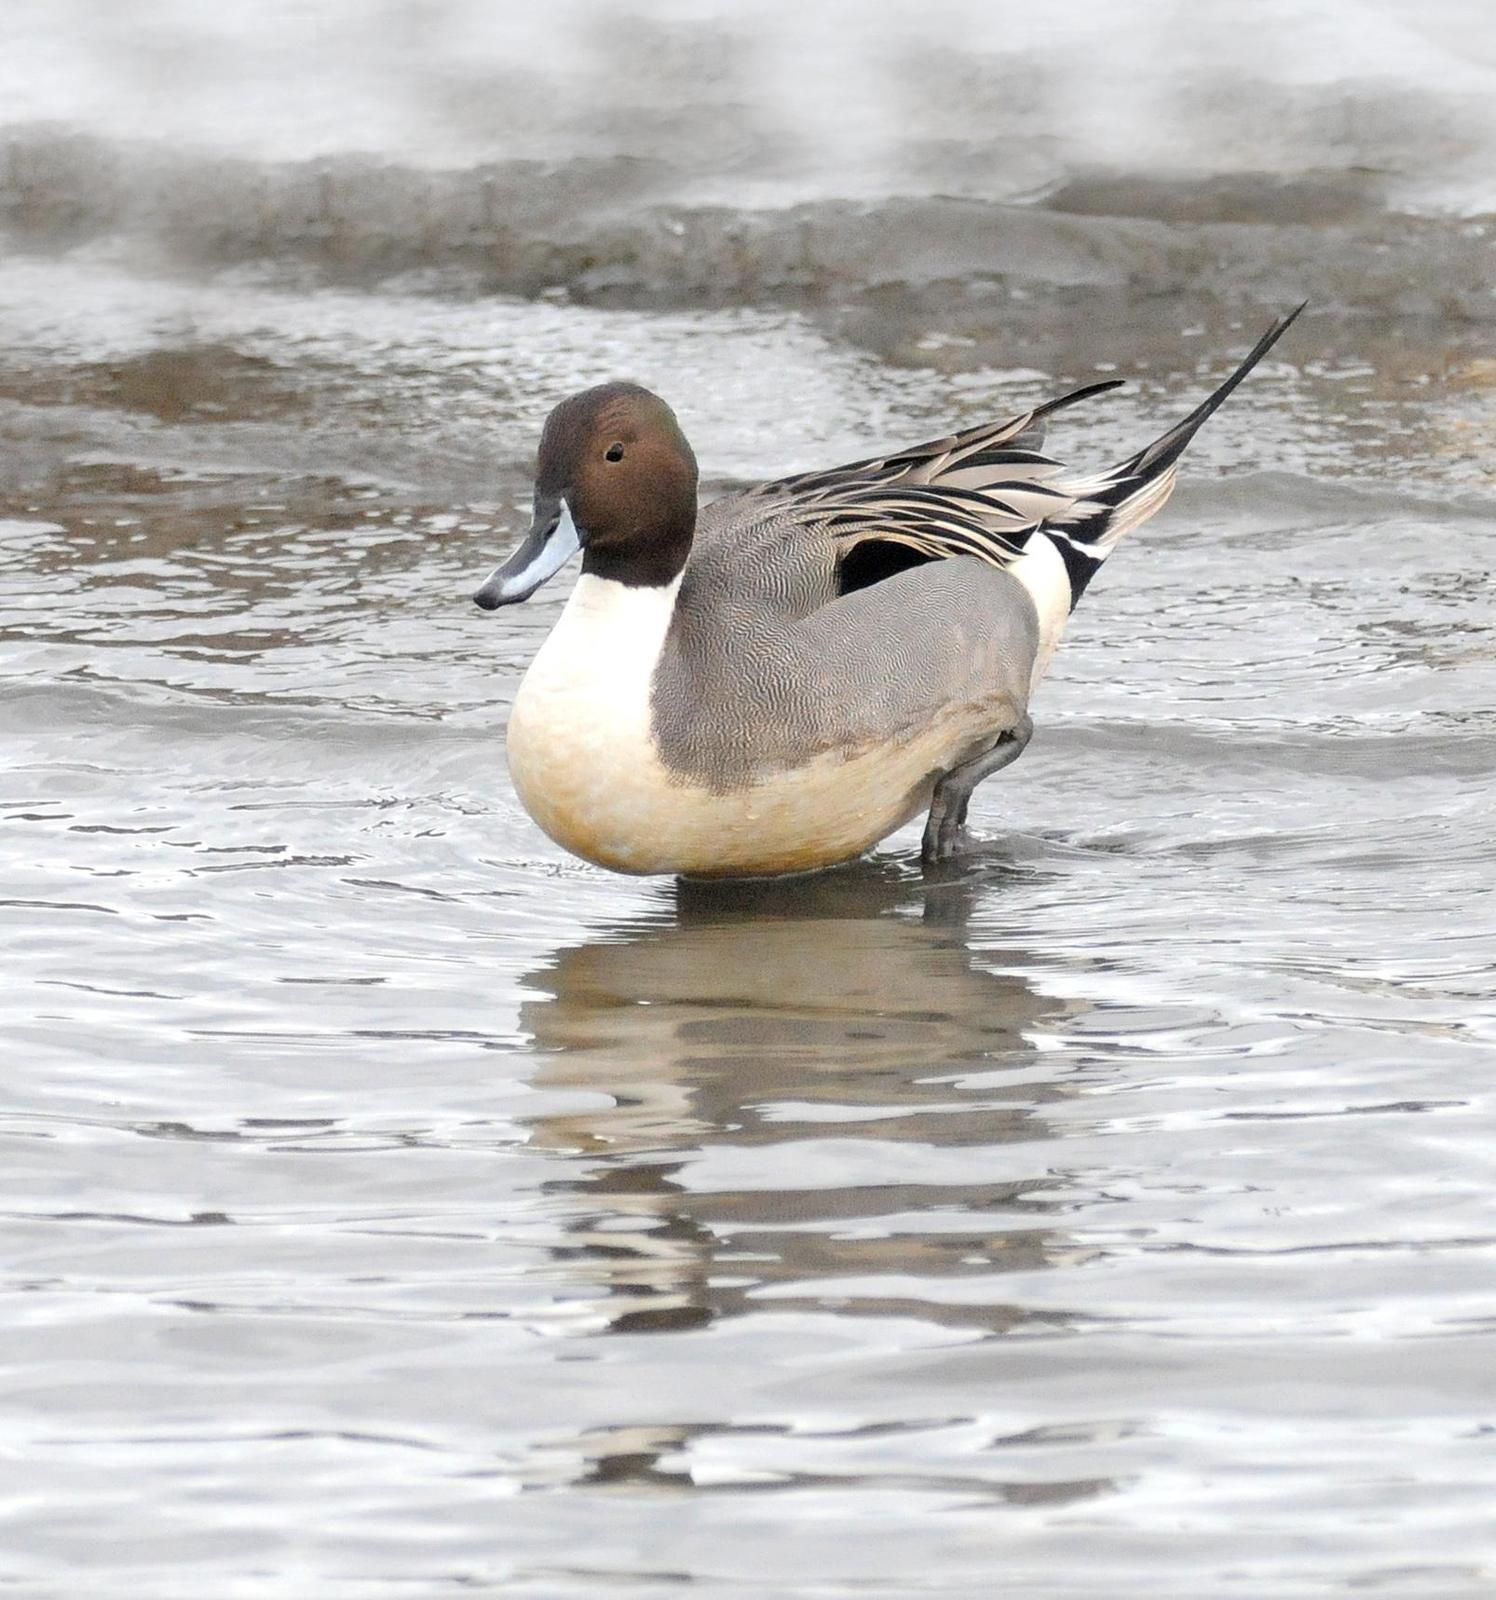 Northern Pintail Photo by Steven Mlodinow